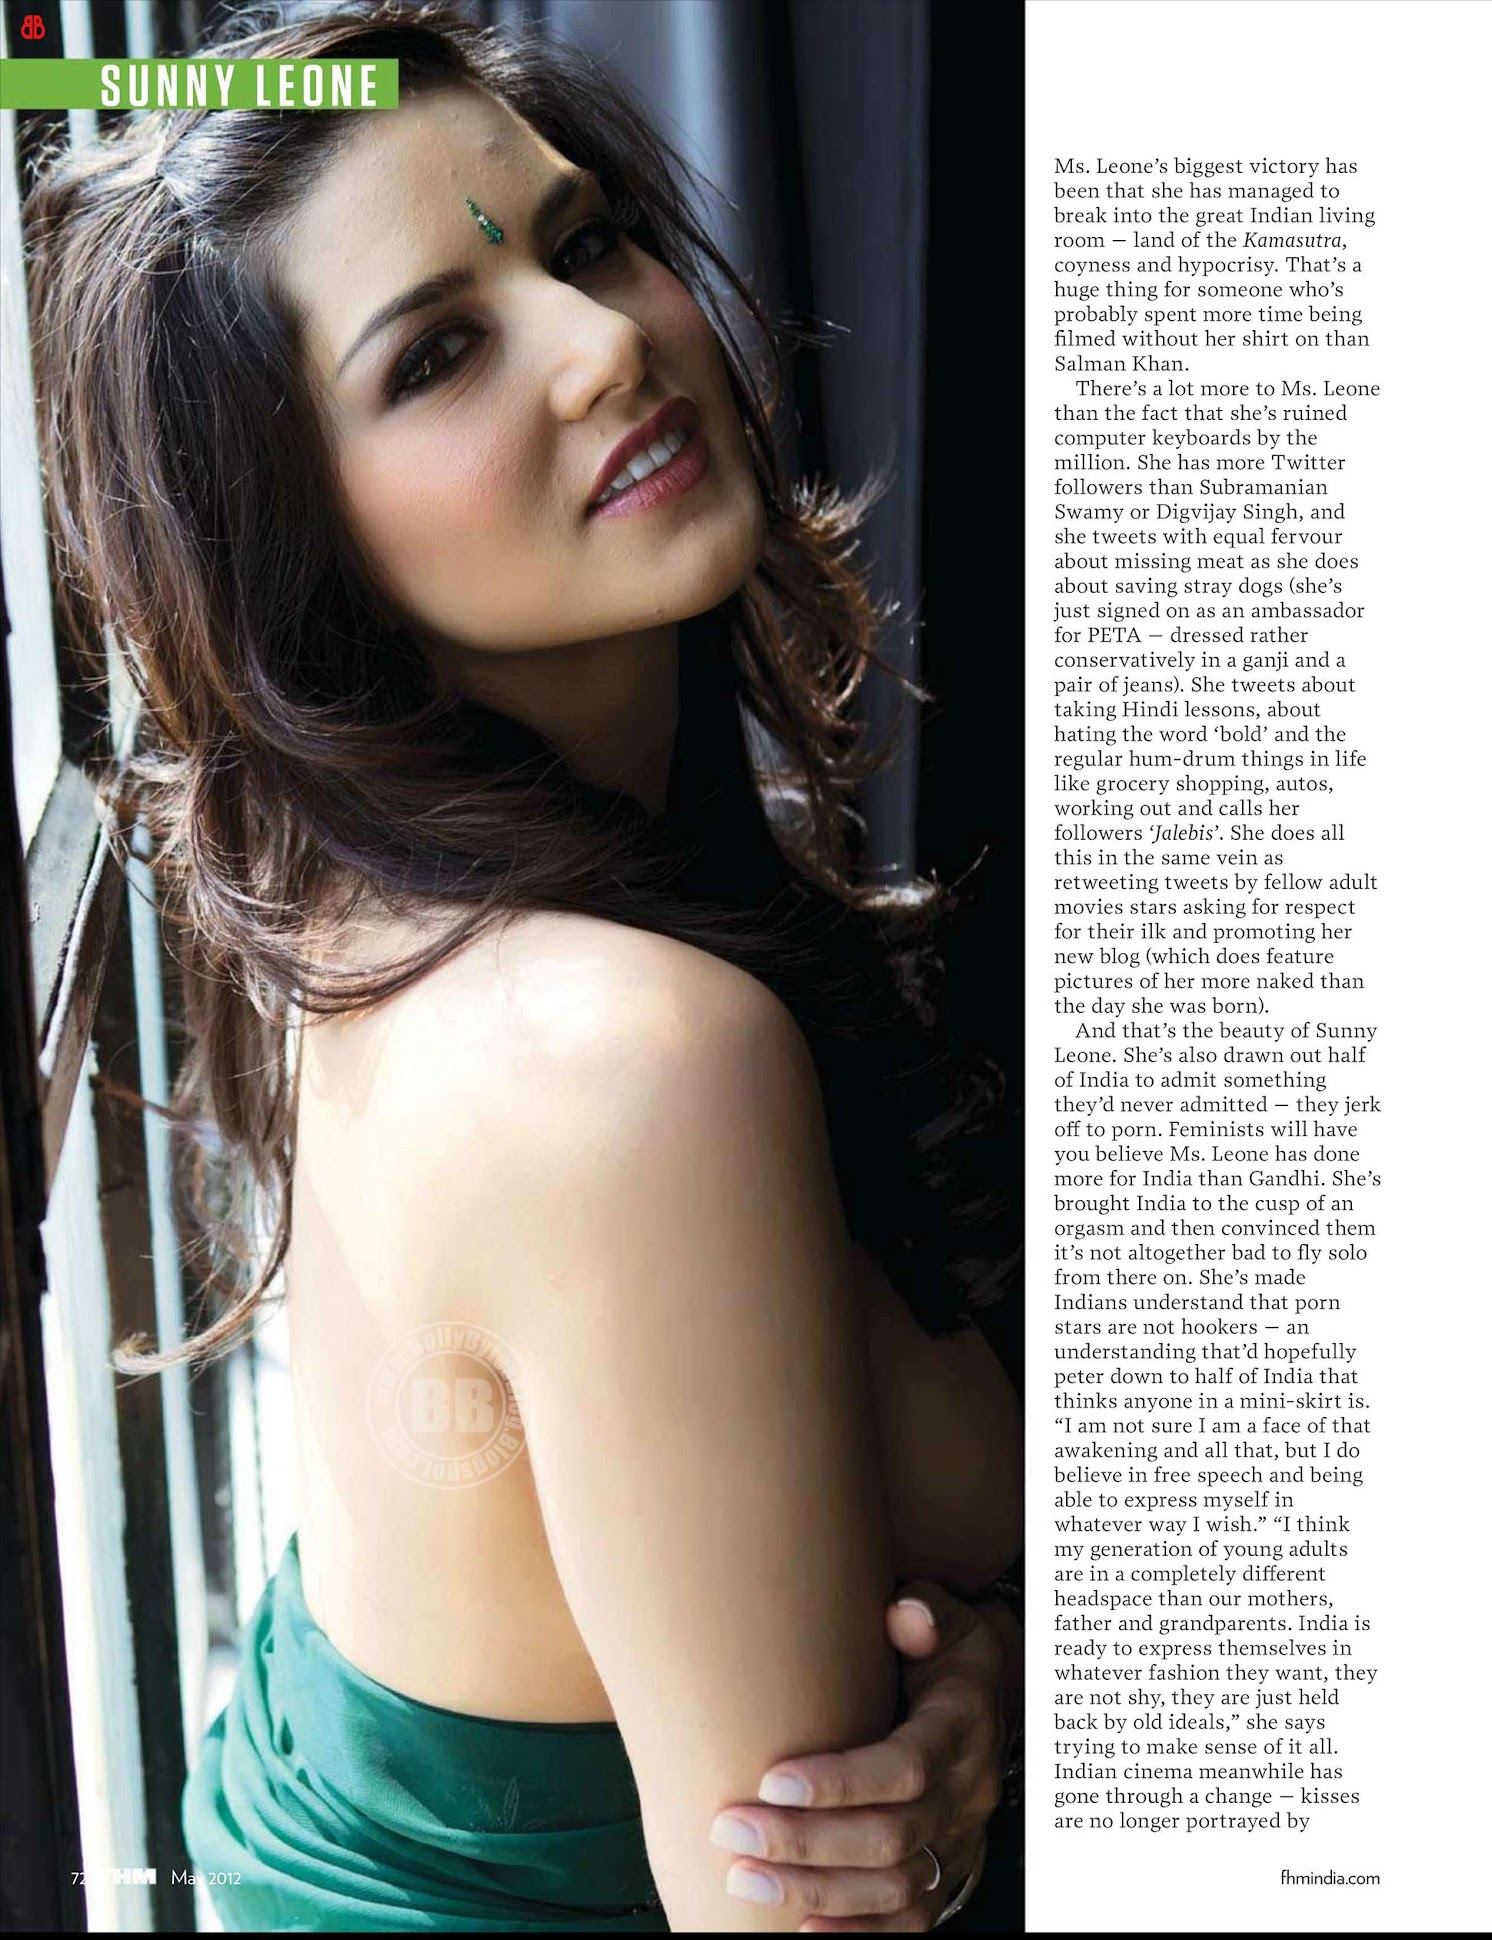 http://3.bp.blogspot.com/-QqC5DruVQt0/T61KrCNbujI/AAAAAAAAIco/7CuO-O-qc_g/s1940/Sunny-Leone-HQ-Photo-Shoot-FHM-May-2012-pics-02.jpg